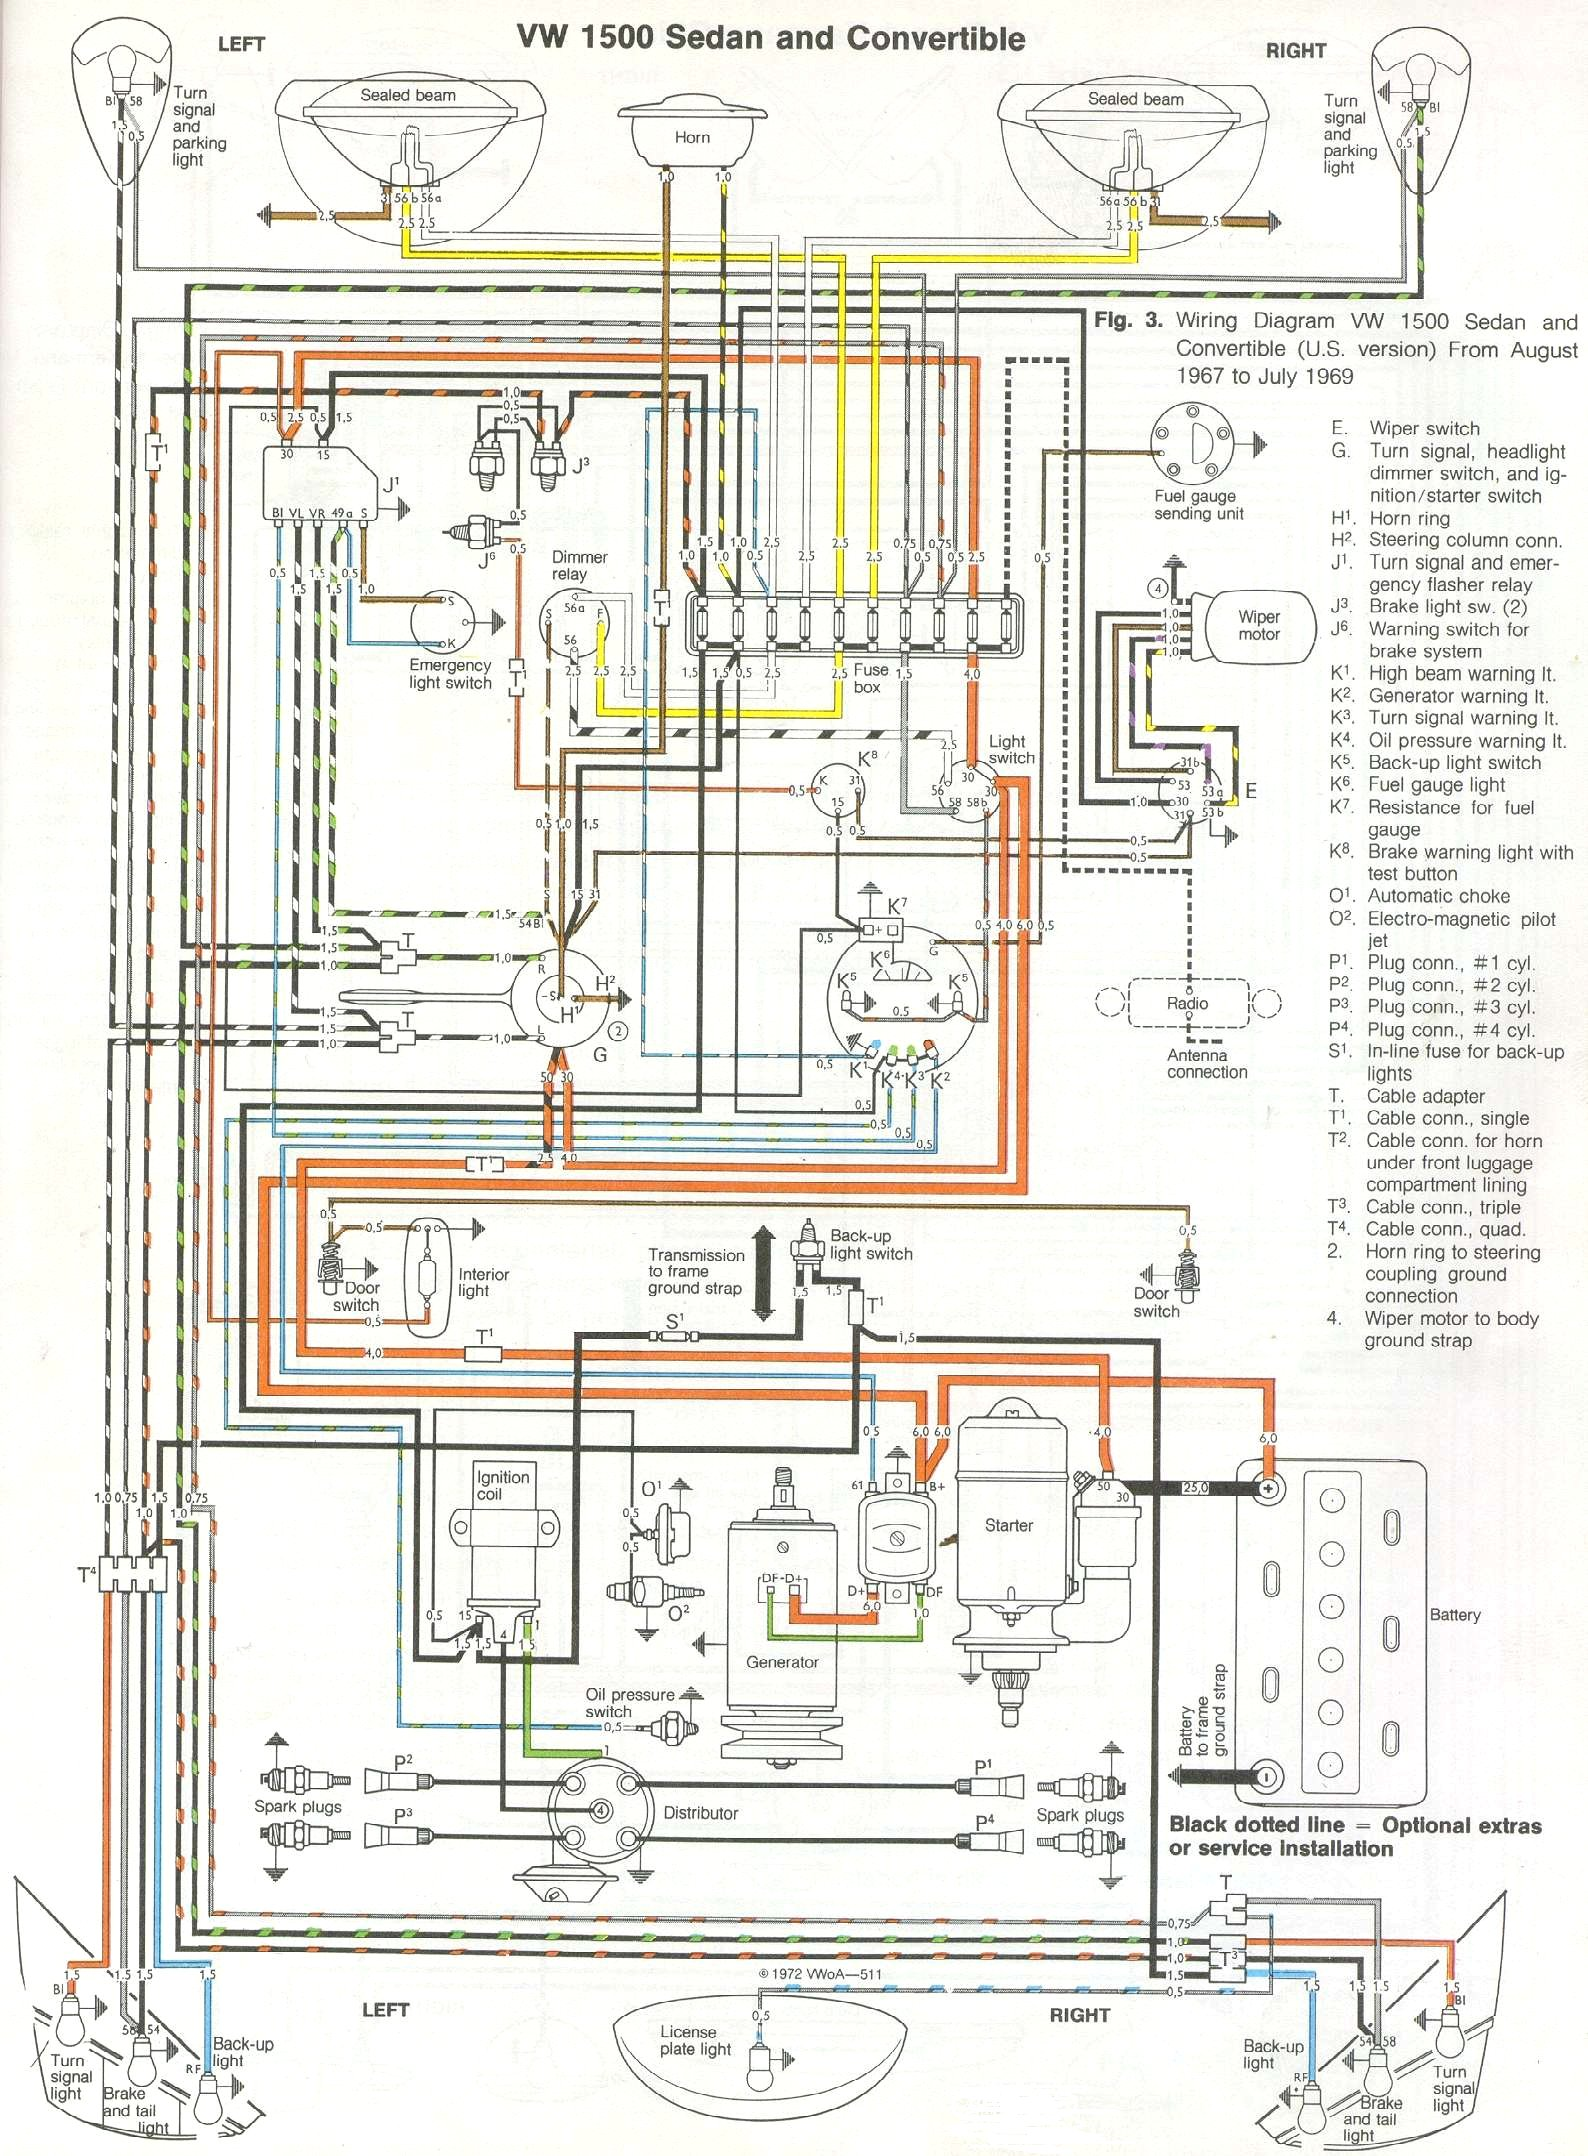 Vw Bug Wire Diagram - seniorsclub.it schematic-sweep - schematic -sweep.seniorsclub.it